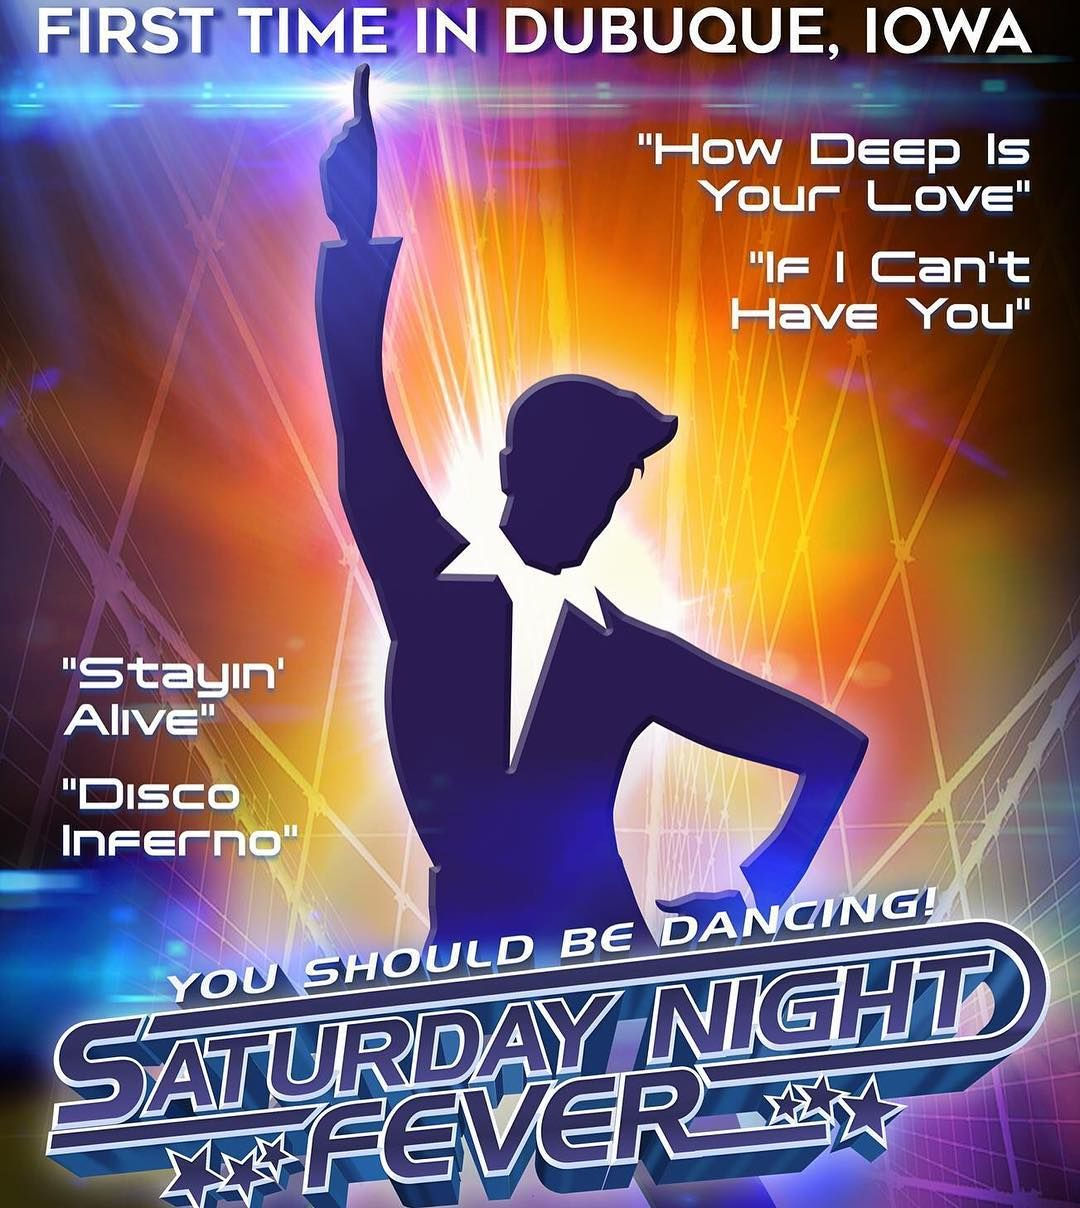 Fiveflagscenter On Instagram Coming To Dubuque Iowa For The First Time Saturdaynightfever Is Coming To The Fiveflagstheat Dubuque Iowa Dubuque Iowa City